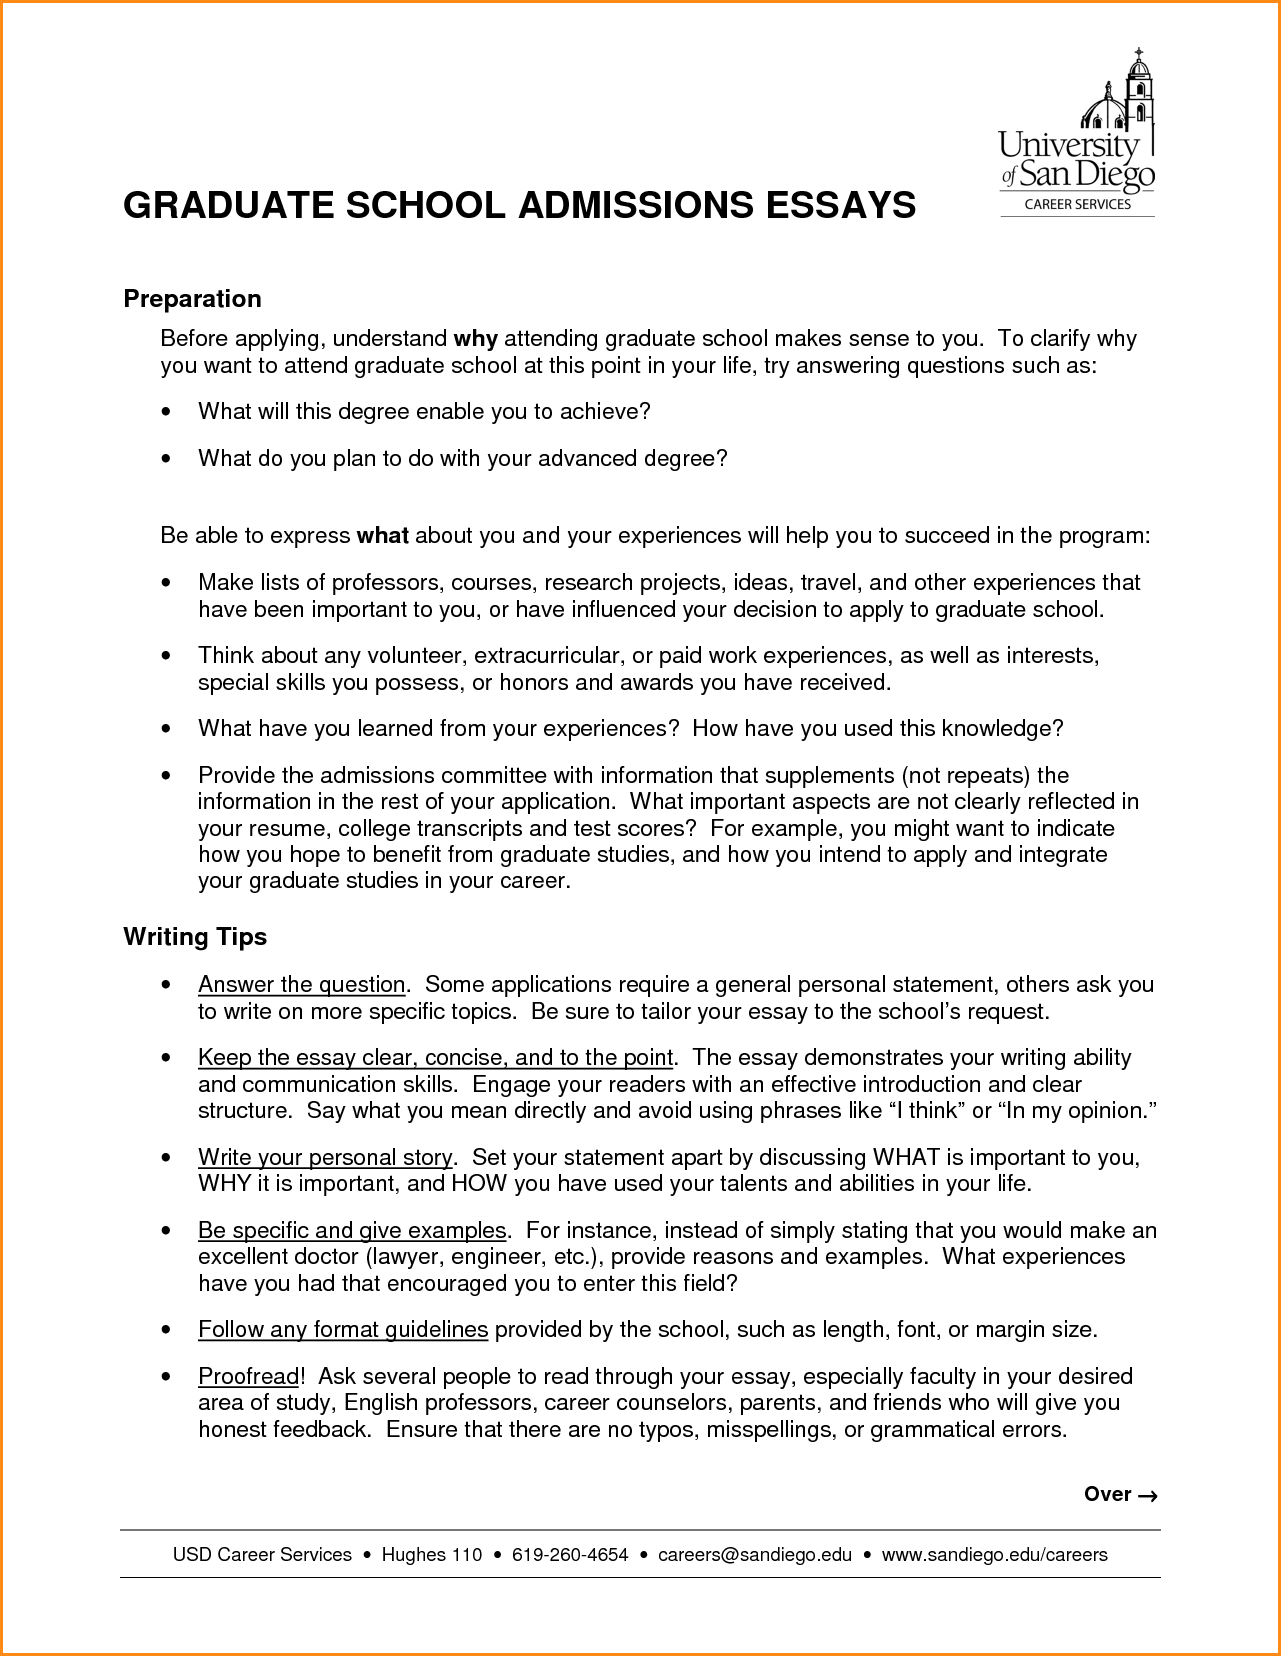 006 Graduation Essay Example High School Science Competitions For Students Pics Sample College Essays Applic International Competition Excellent 8th Grade Full